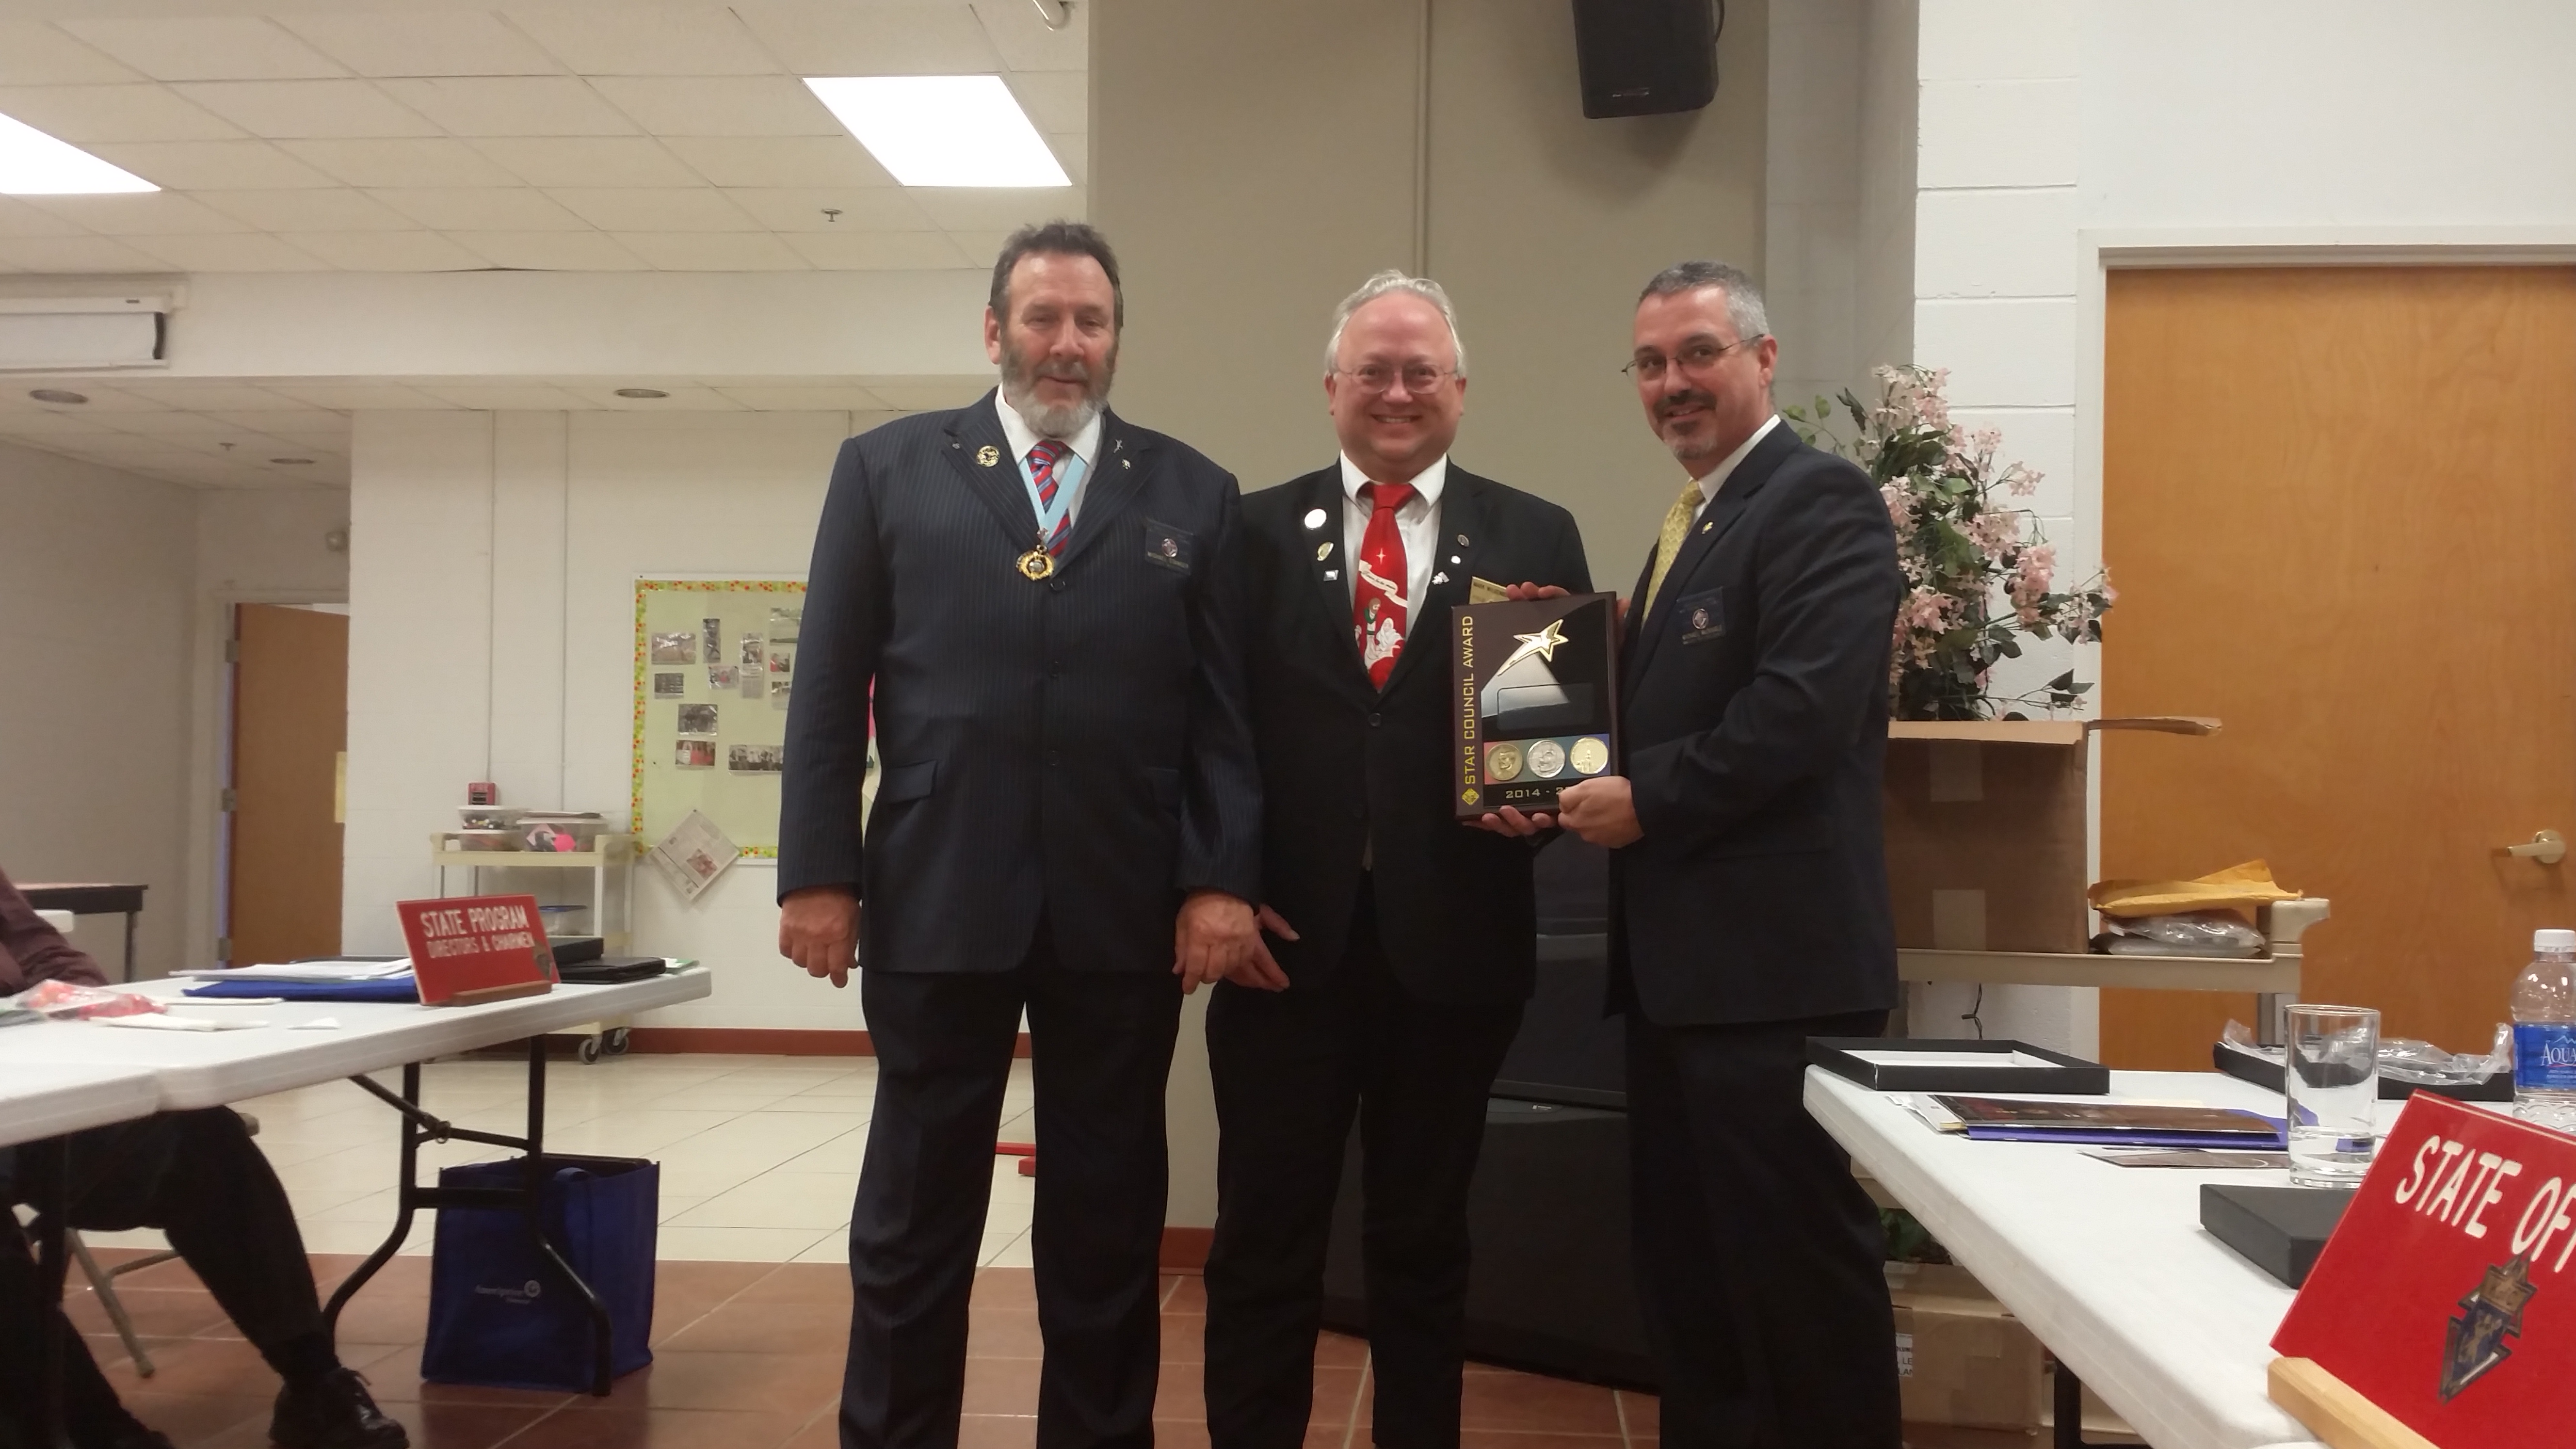 State Warden Mike Stanger & Mark Wilgenbusch W 2015 WV Knights of Columbus 12191 Star Council Award